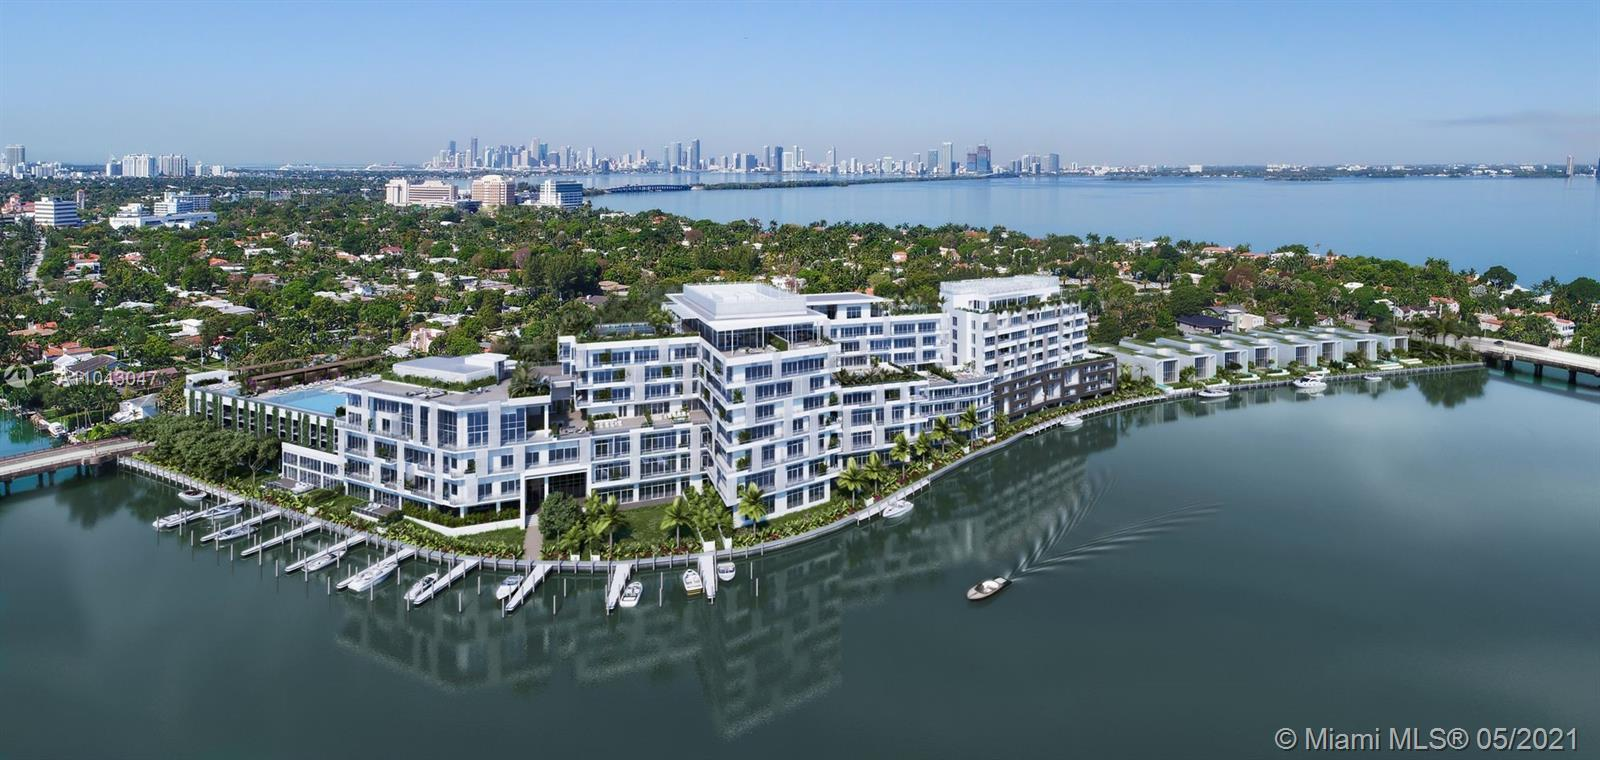 Become the owner of an extraordinary luxury living experience at the Ritz Carlton Residences Miami B